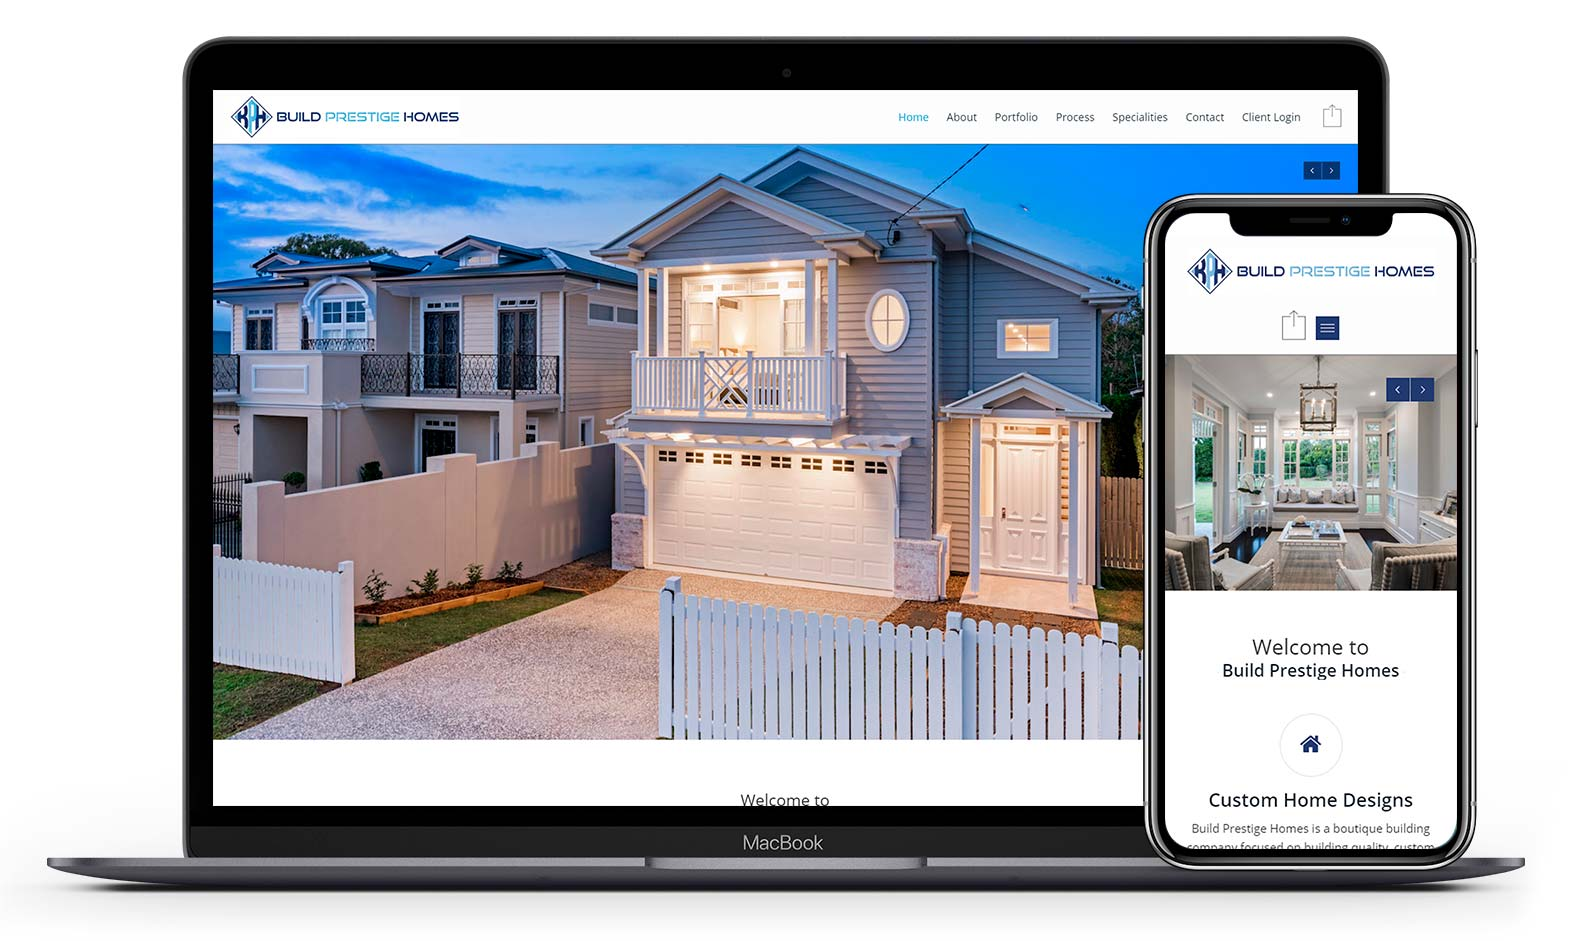 Build Prestige Homes' website design displayed responsive devices